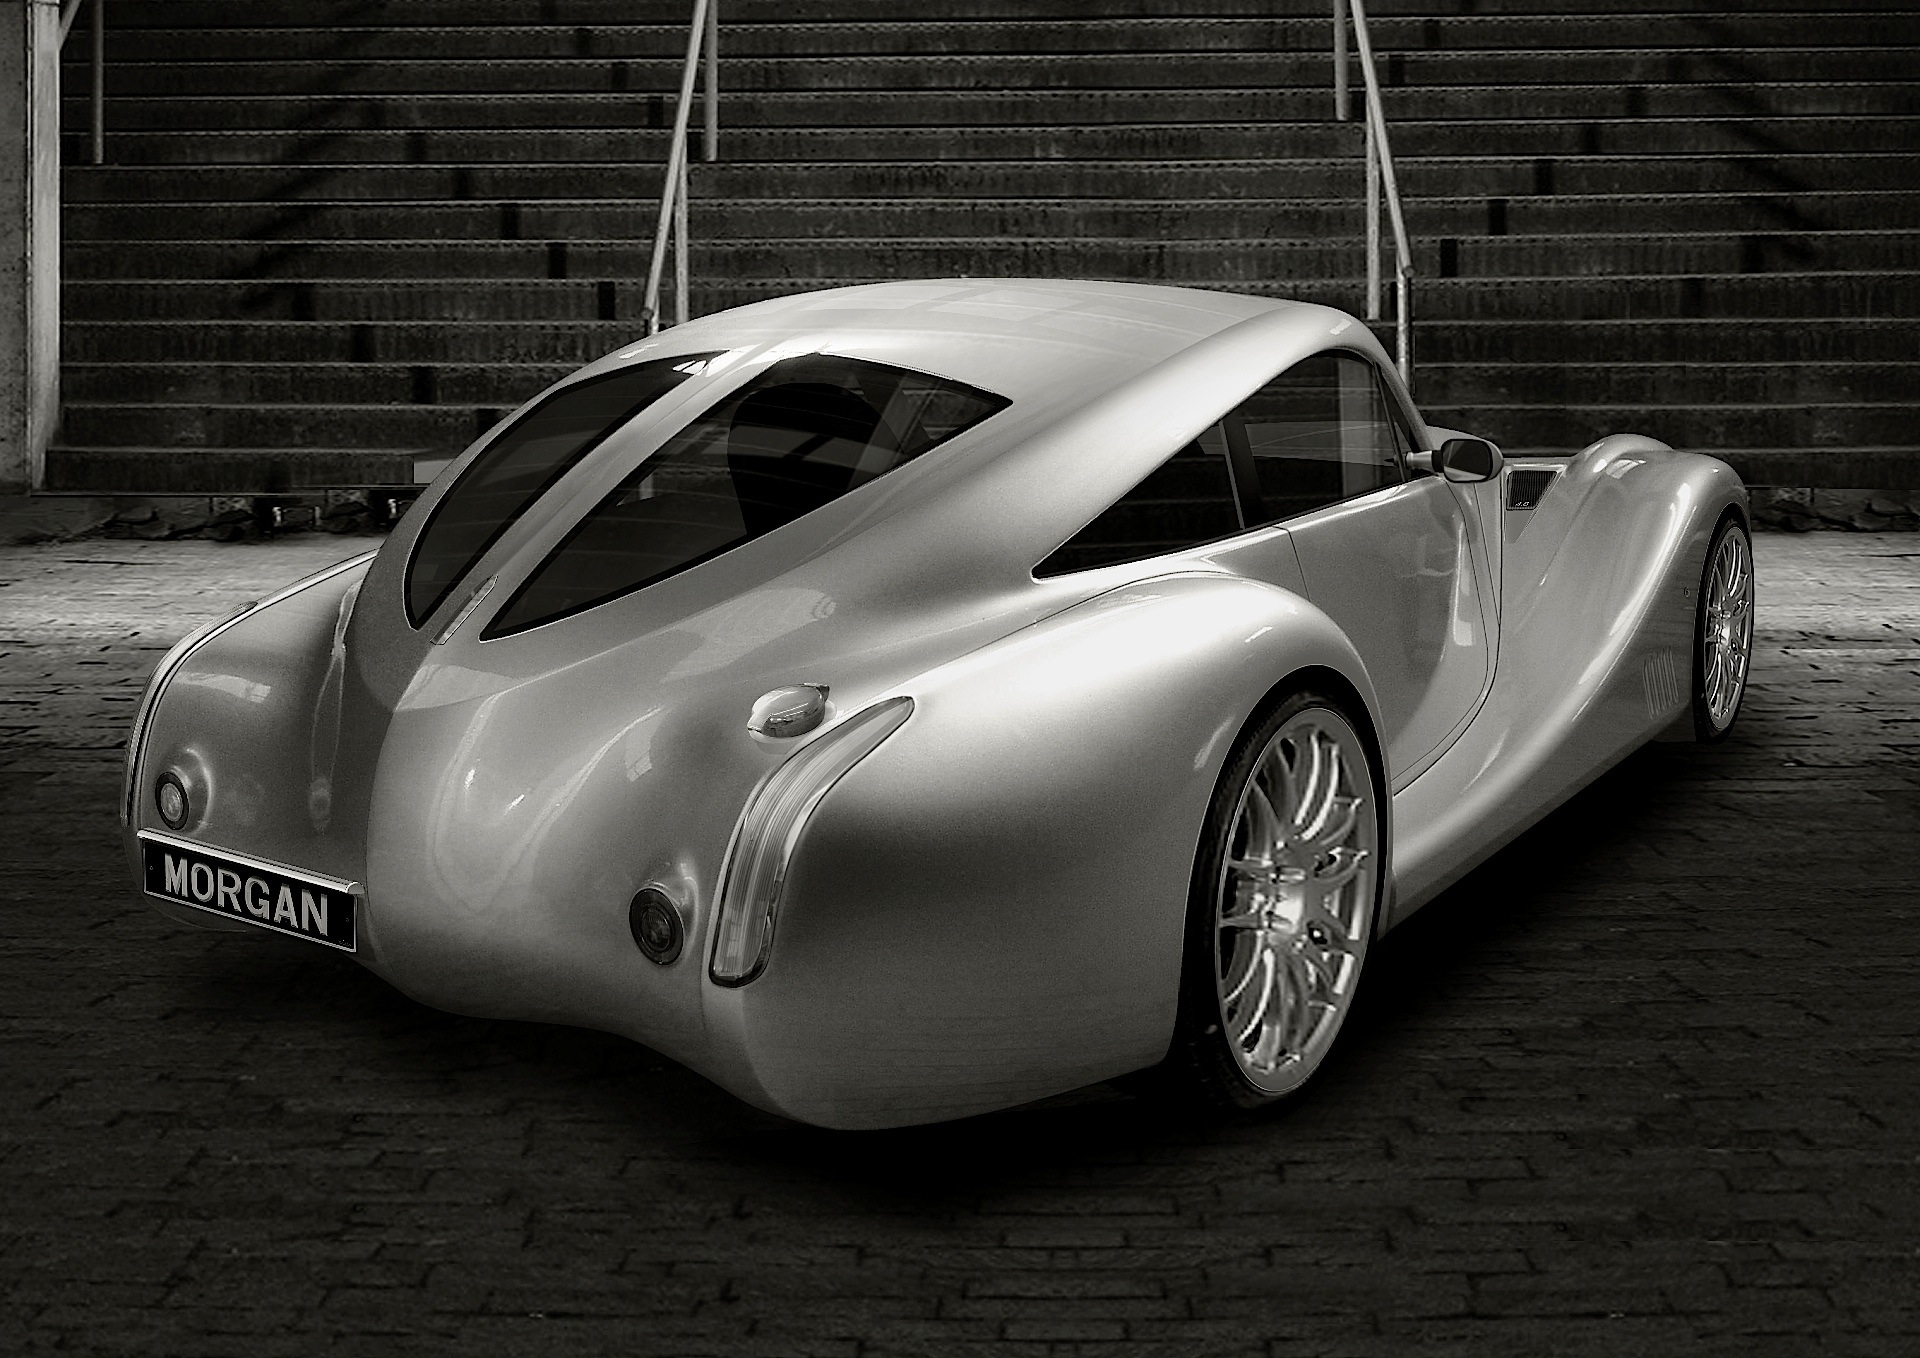 2012 morgan aero coupe car photos catalog 2018. Black Bedroom Furniture Sets. Home Design Ideas